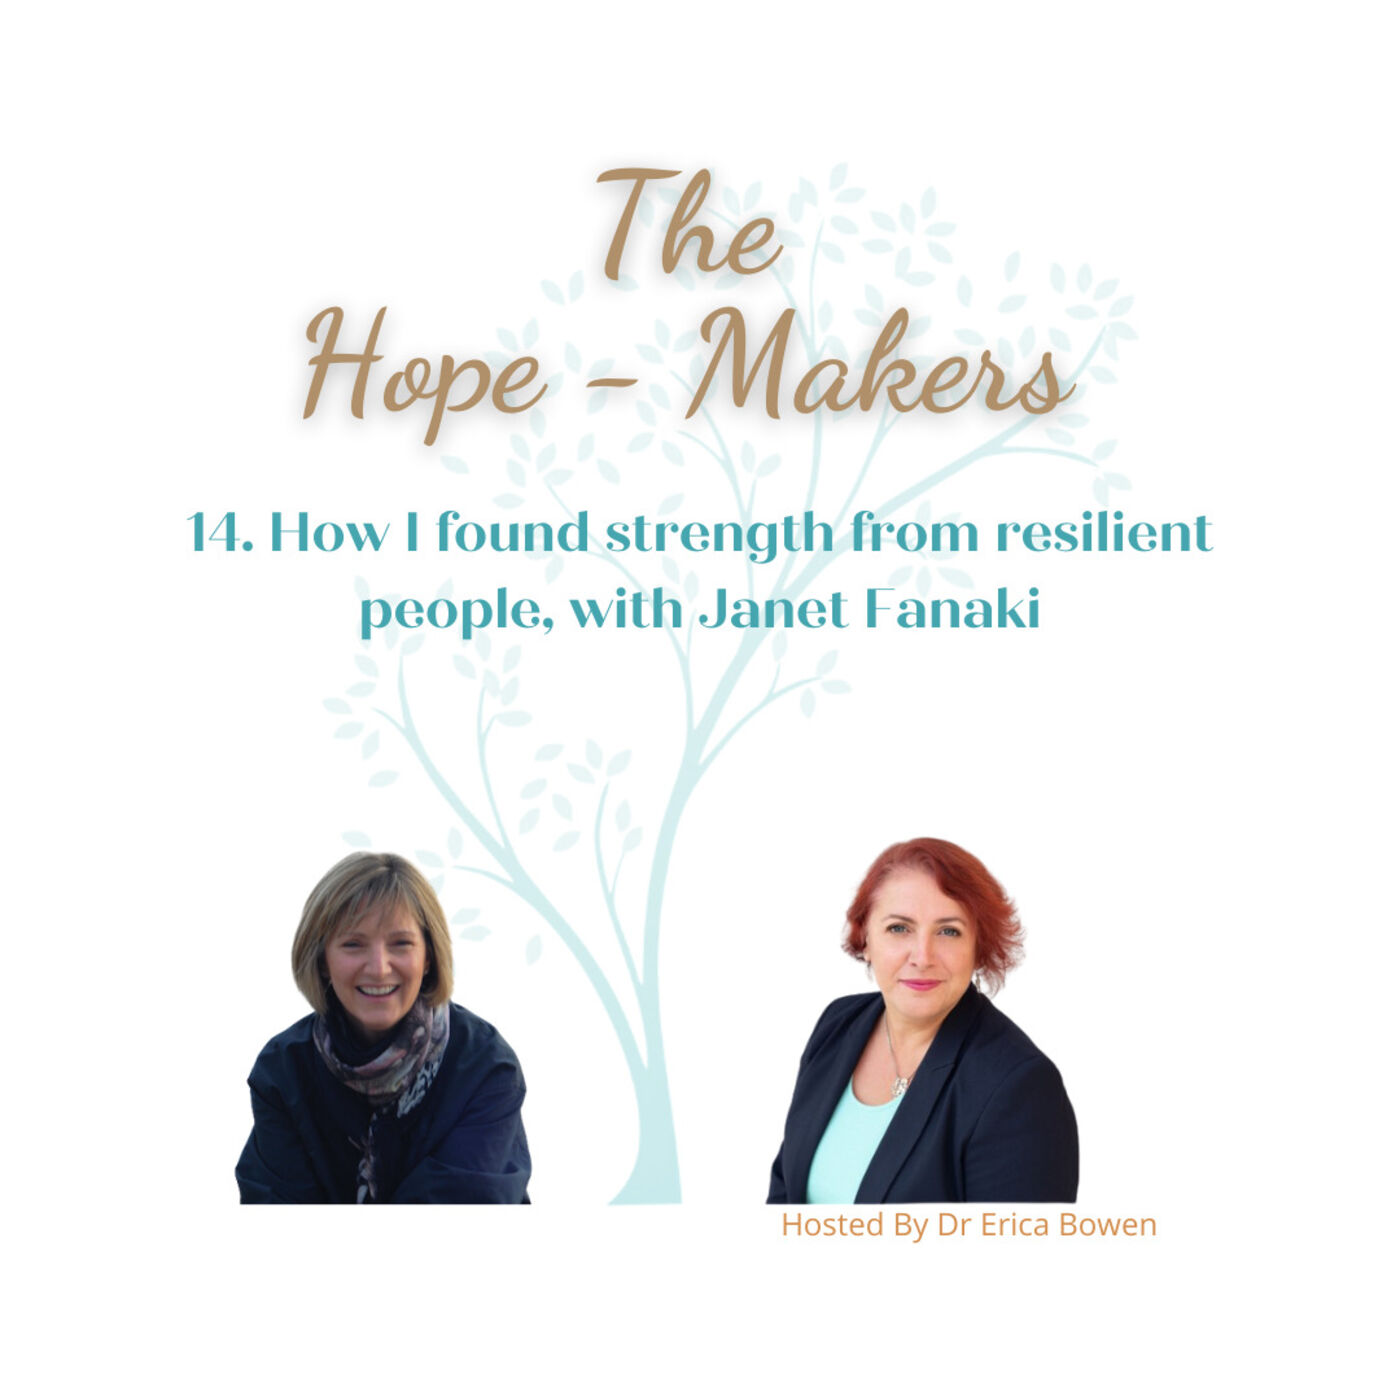 Episode 14. How I found strength from resilient people, with Janet Fanaki